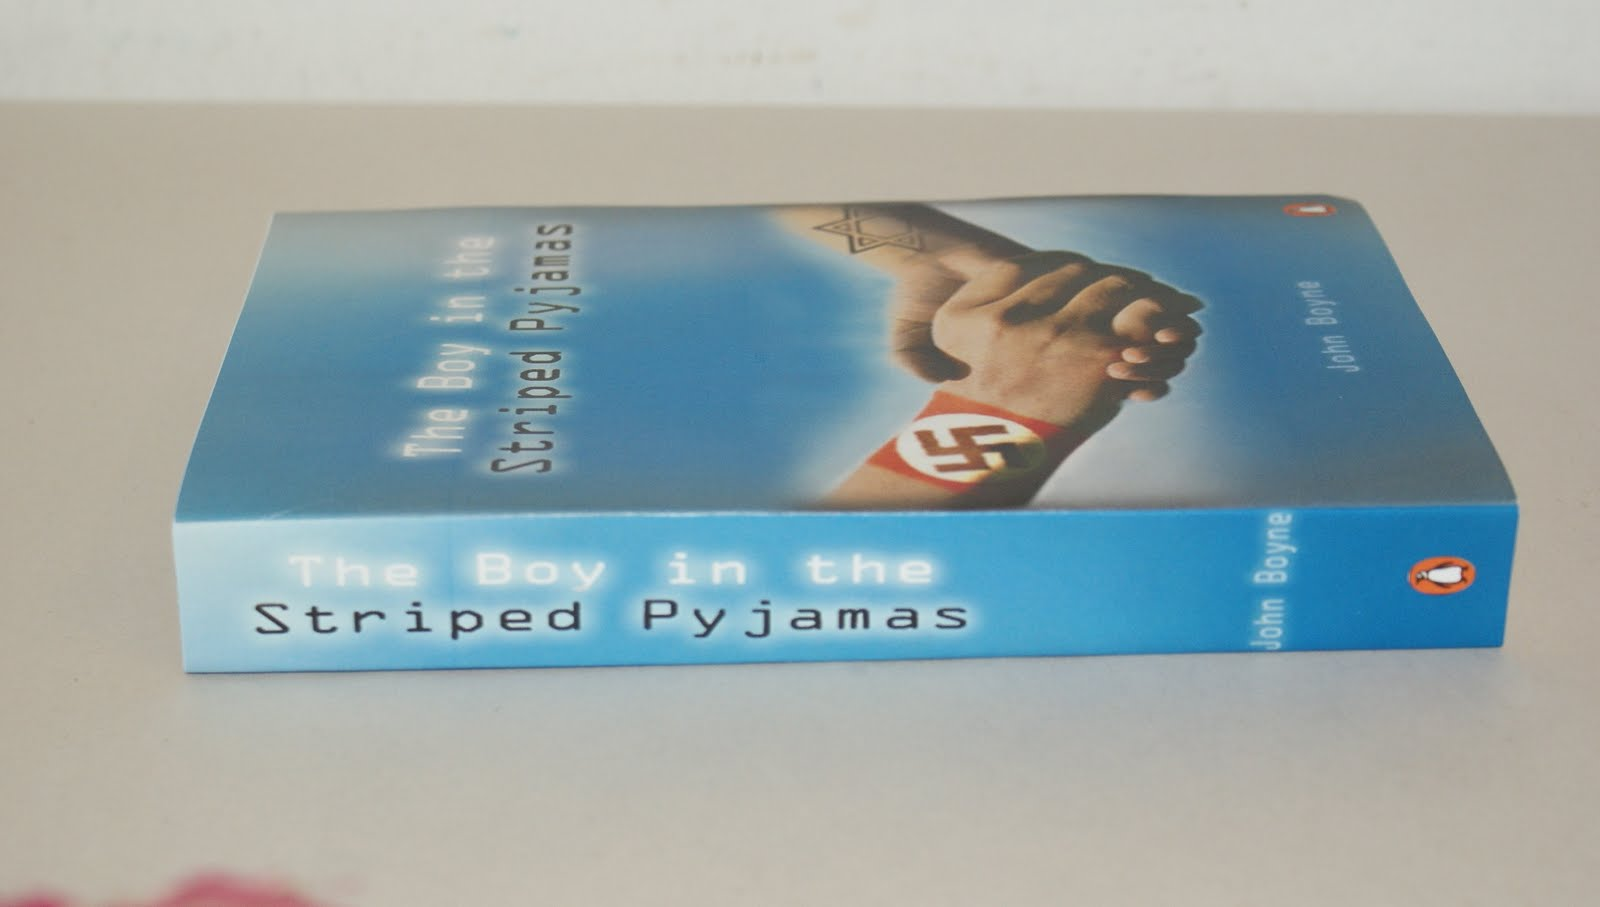 its a record of my work  i did a bookcover for the boy in the striped pyjamas by john boyne in a first picture i uploaded is the final one i picked handshake a symbols